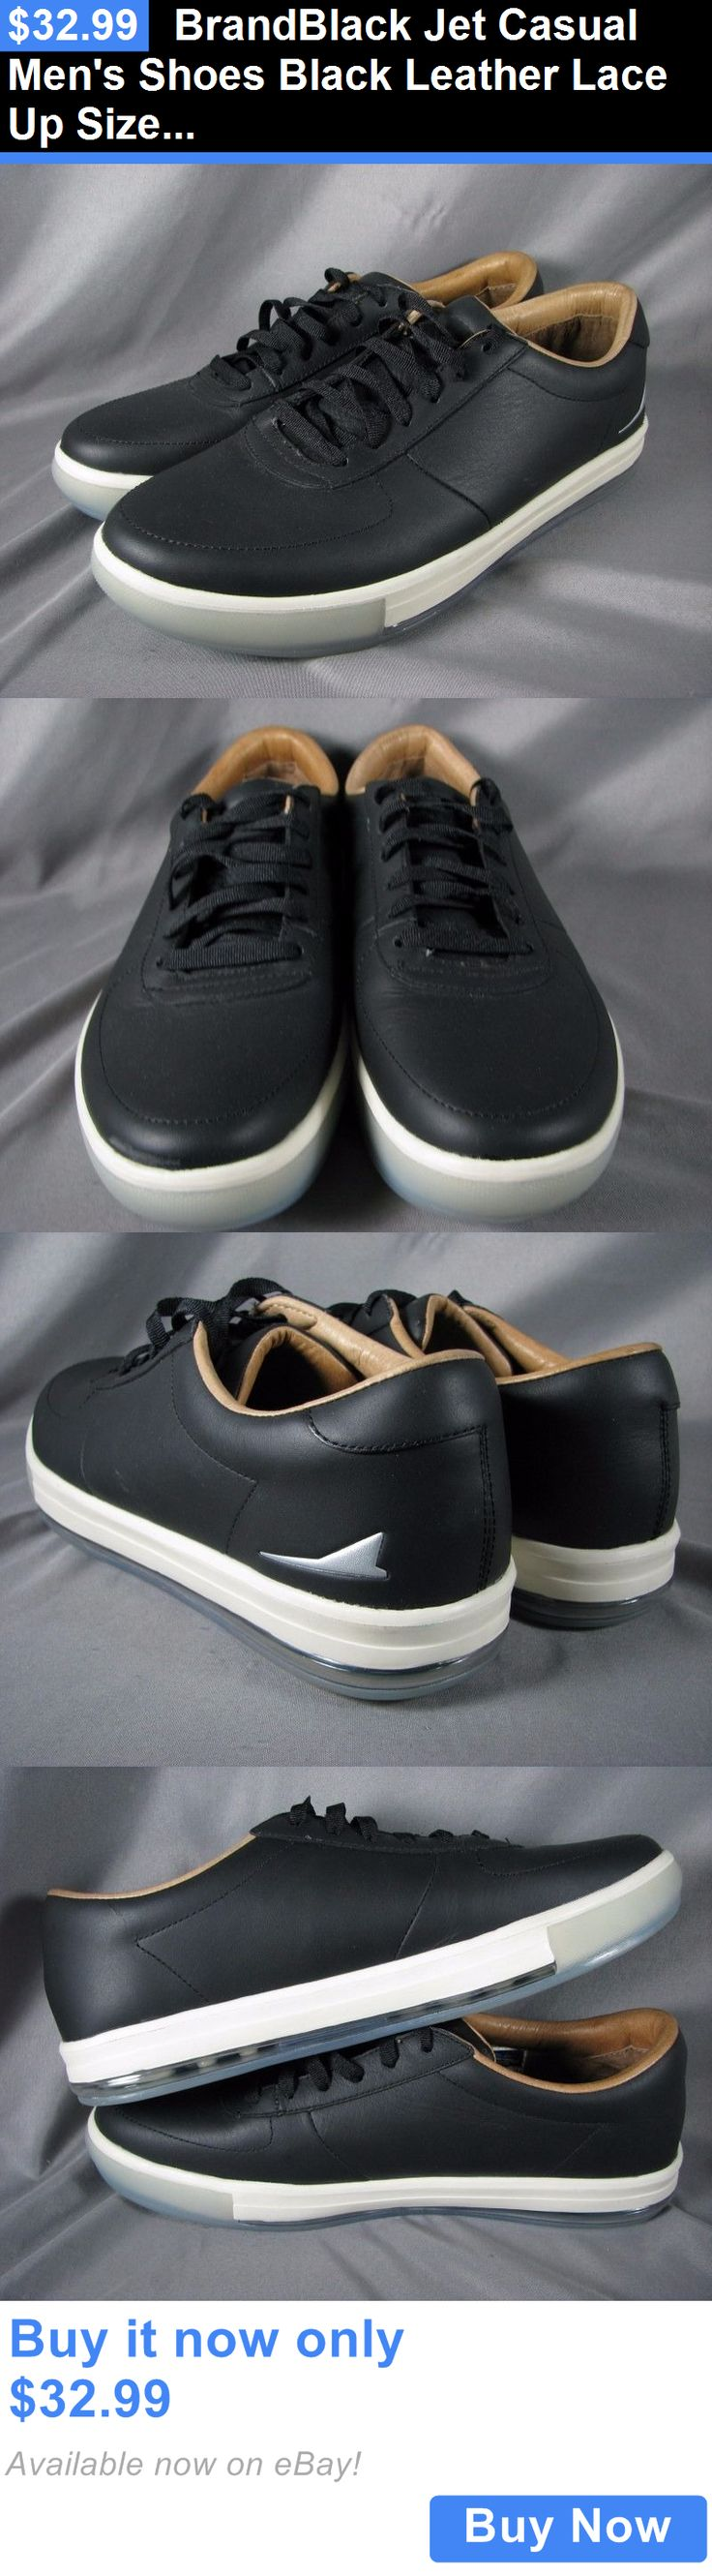 Men Shoes: Brandblack Jet Casual Mens Shoes Black Leather Lace Up Size 10 Us New BUY IT NOW ONLY: $32.99